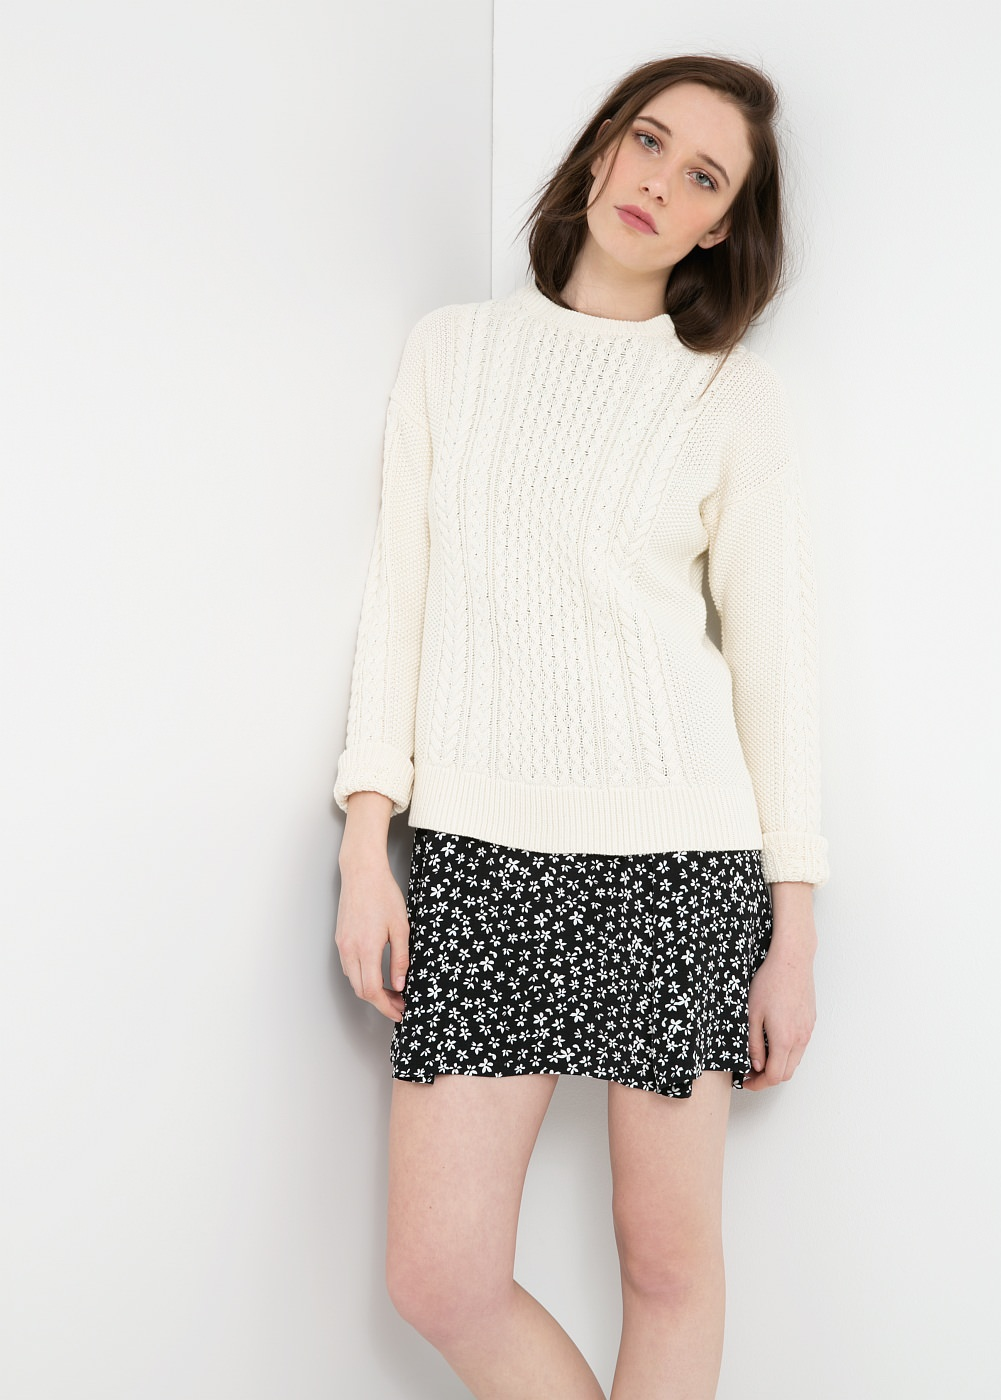 Cable-knit cotton sweater - Cardigans and sweaters for Women | MANGO